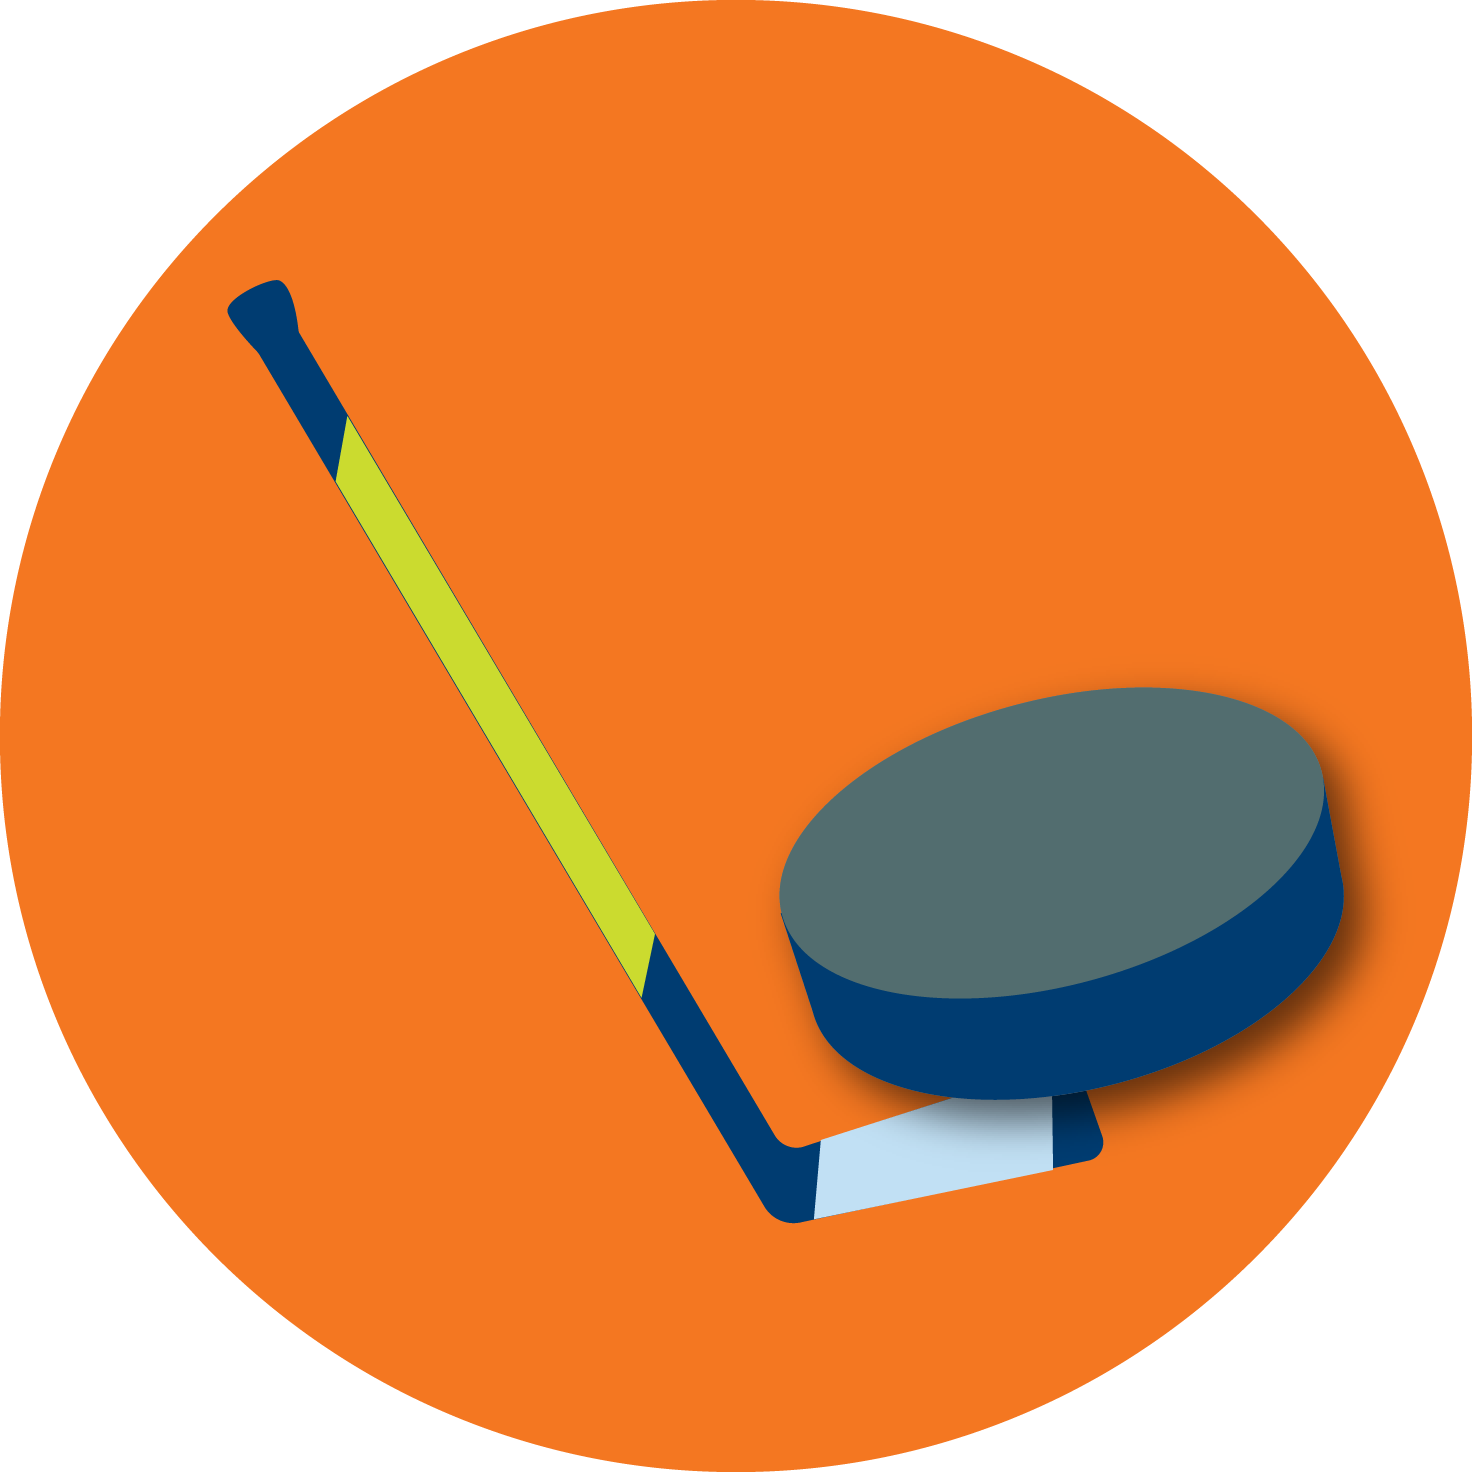 A hockey stick and puck.